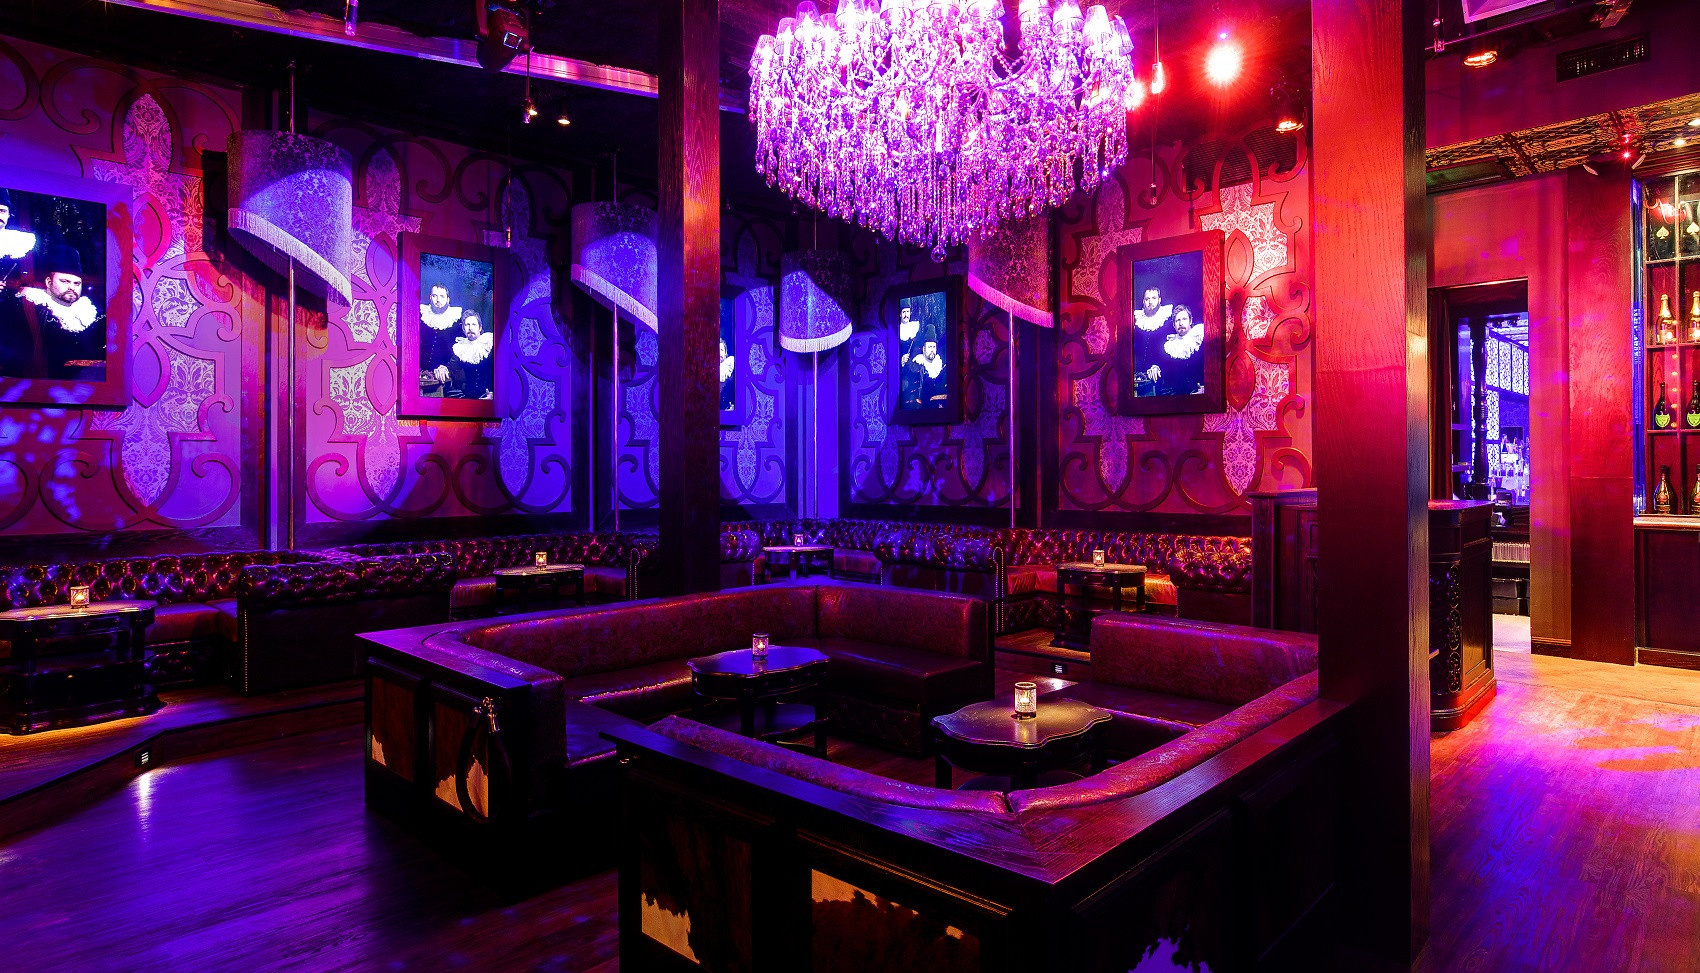 dynaled-club-disco-lighting-examples-14.